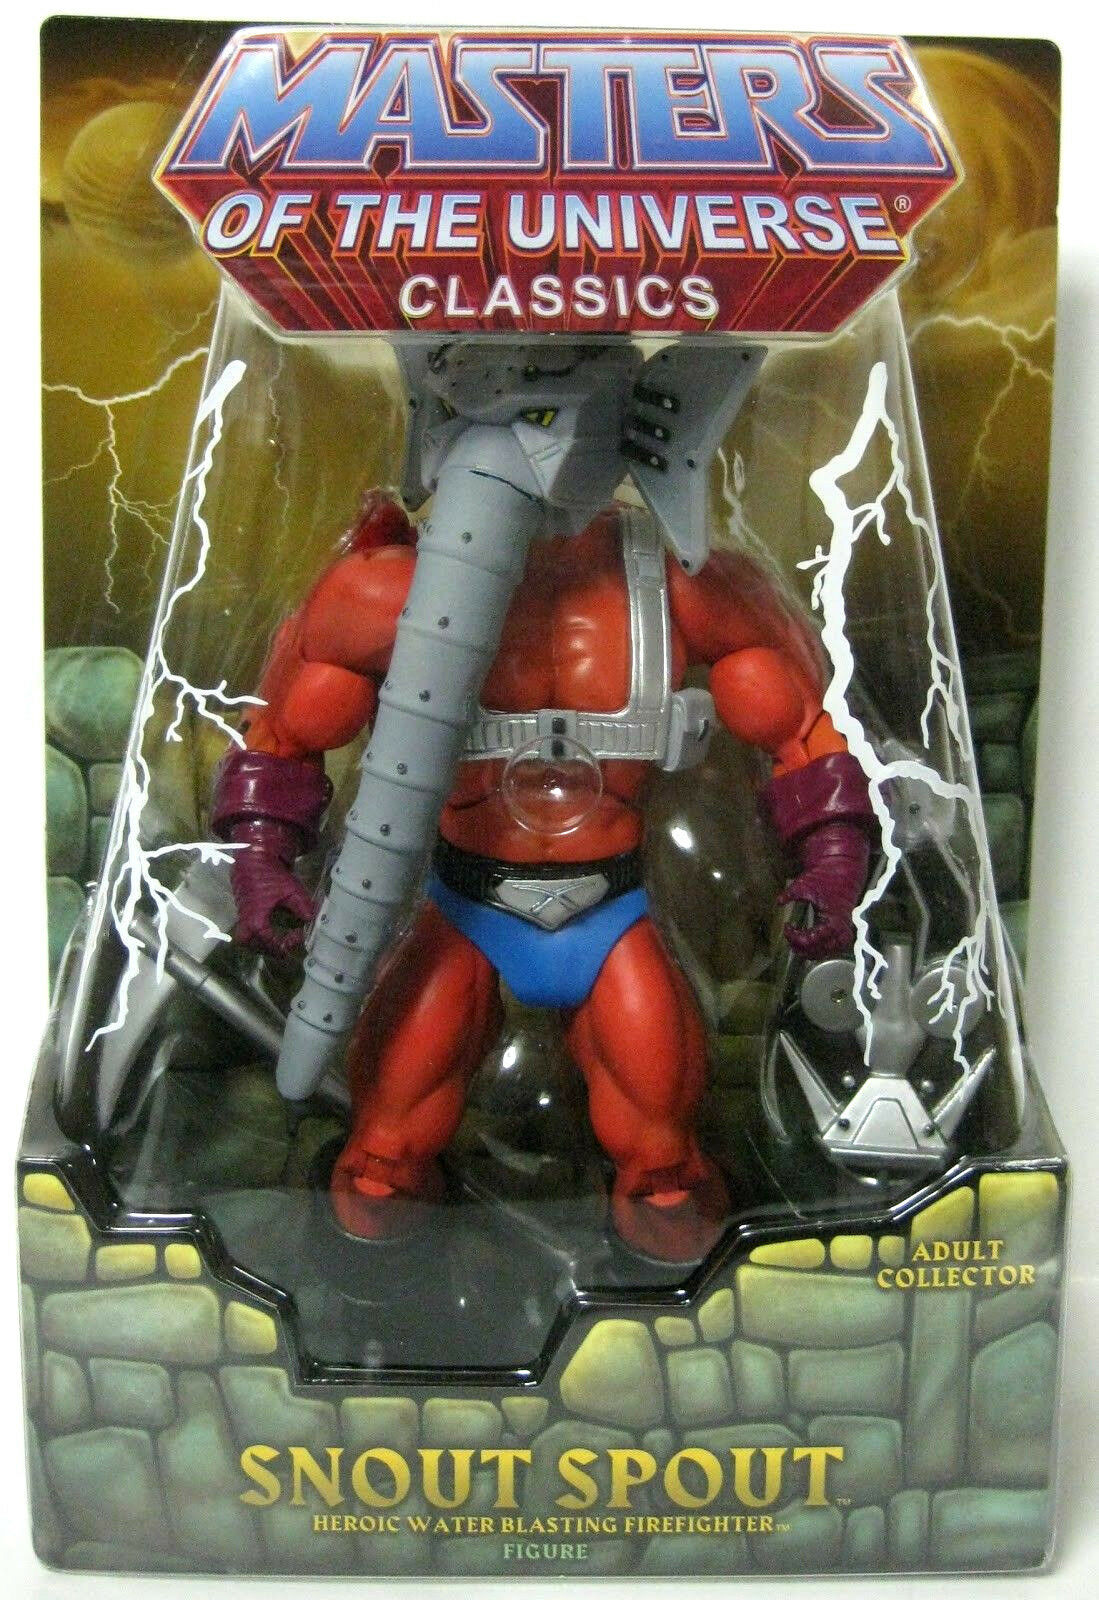 MASTERS OF OF OF THE UNIVERSE Classics_SNOUT SPOUT 6  figure_Exclusive Limited Edition 9d4194